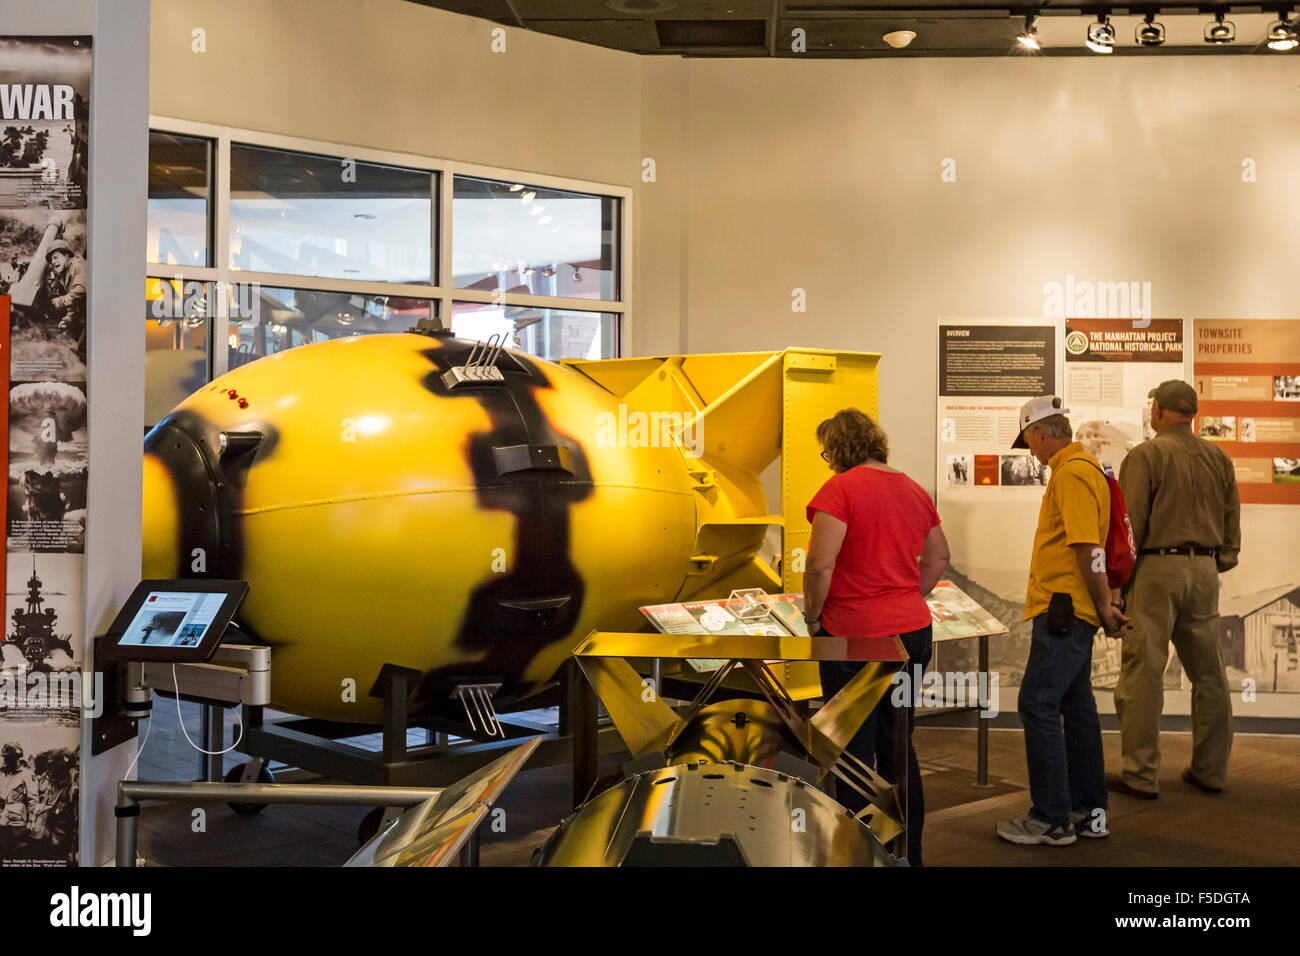 Los Alamos, New Mexico - The Bradbury Science Museum containsa  replicas of  Fat Man, the nuclear bomb dropped on - Stock Image